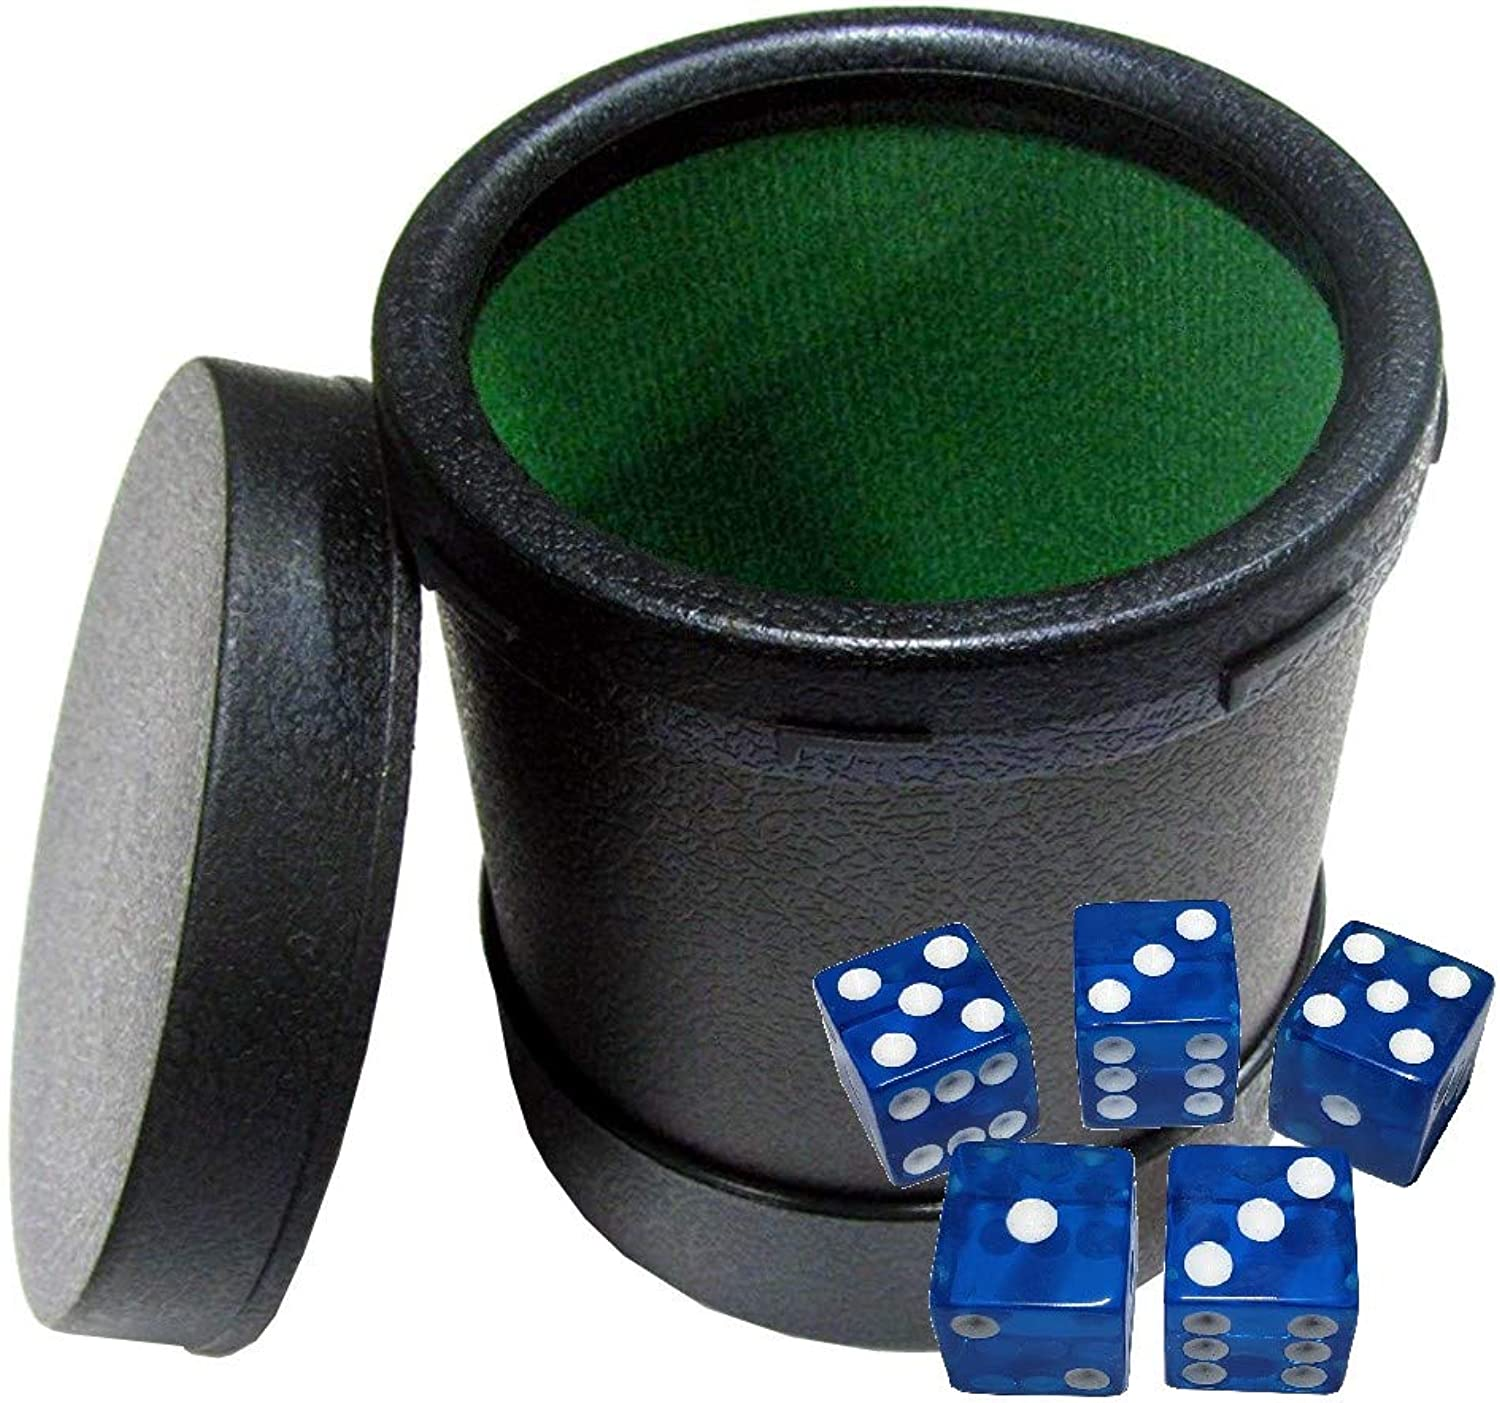 Felt Lined Dice Cup with Easy On Off Lid + 5 Square Corner Transparent Dice